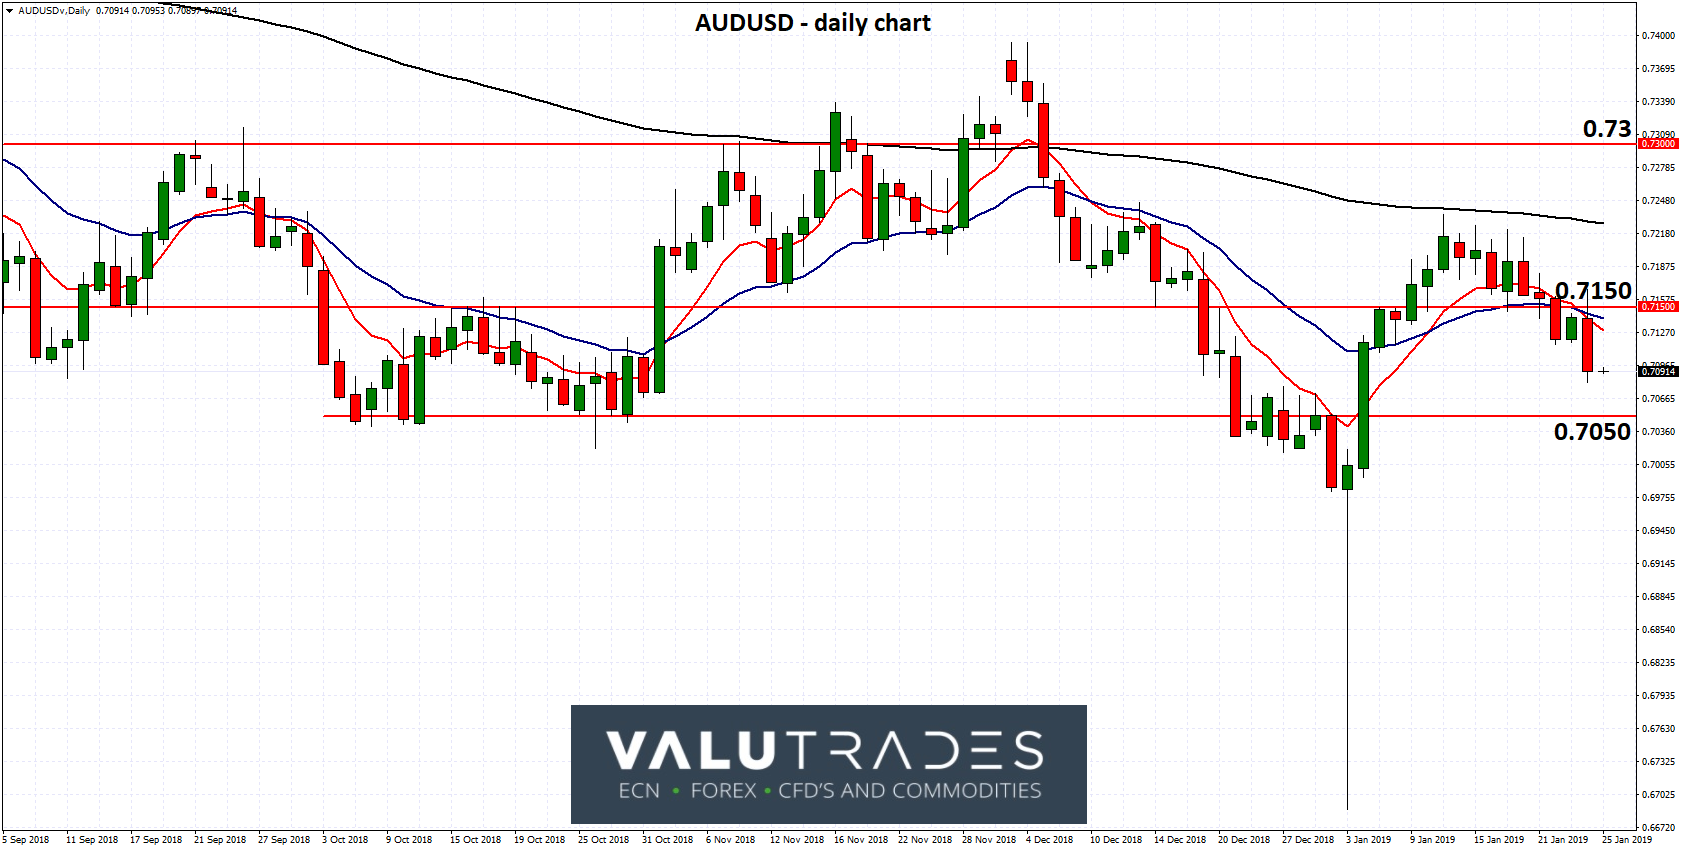 AUDUSD - Drops Below Key 0.7150 Level Despite Unemployment Drop